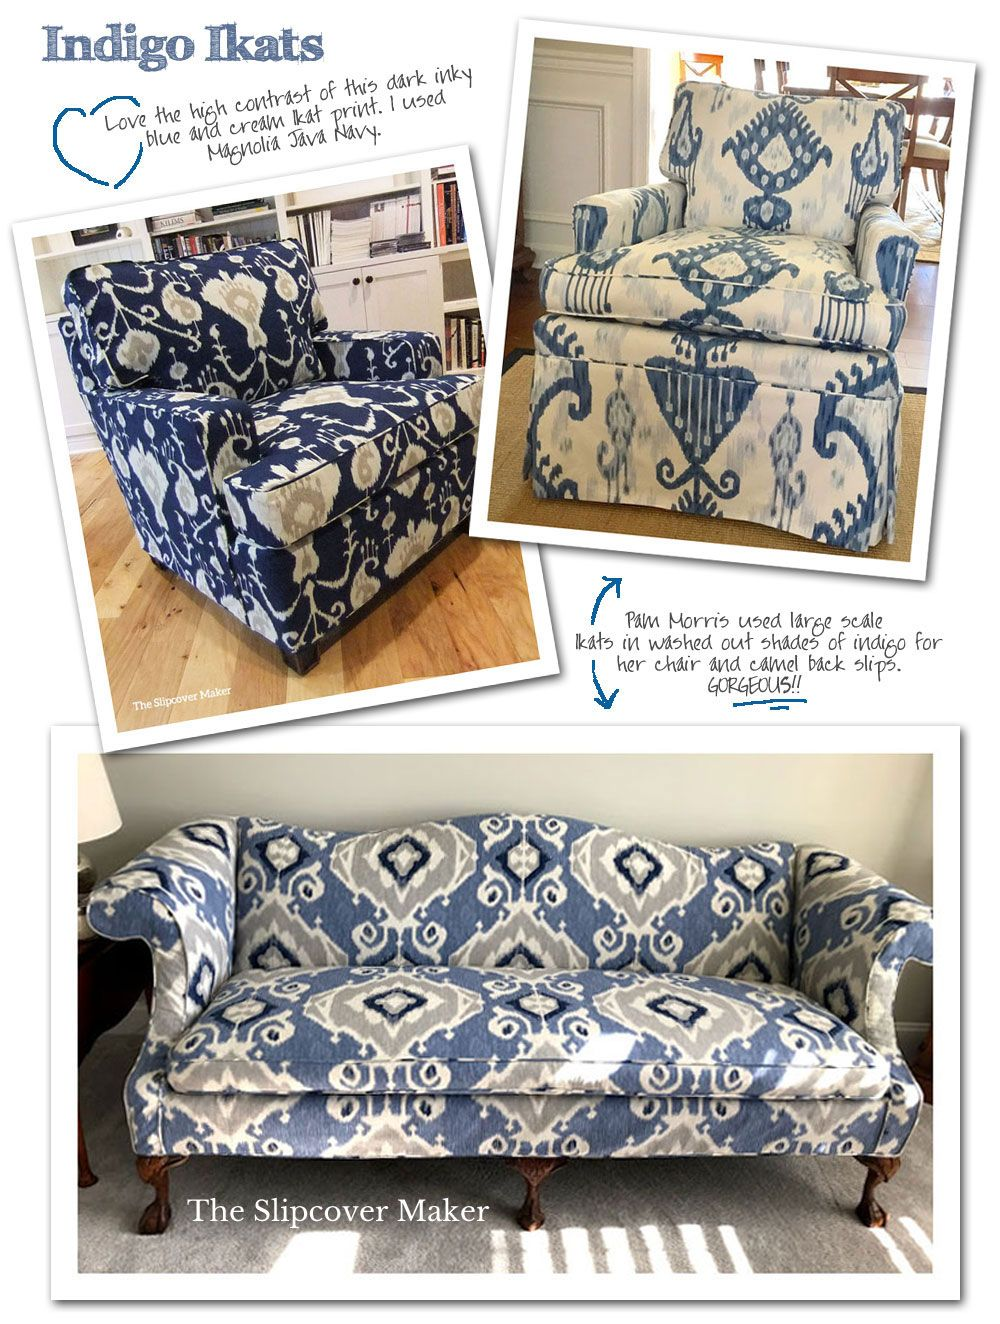 Pin On Indigo Slipcovers